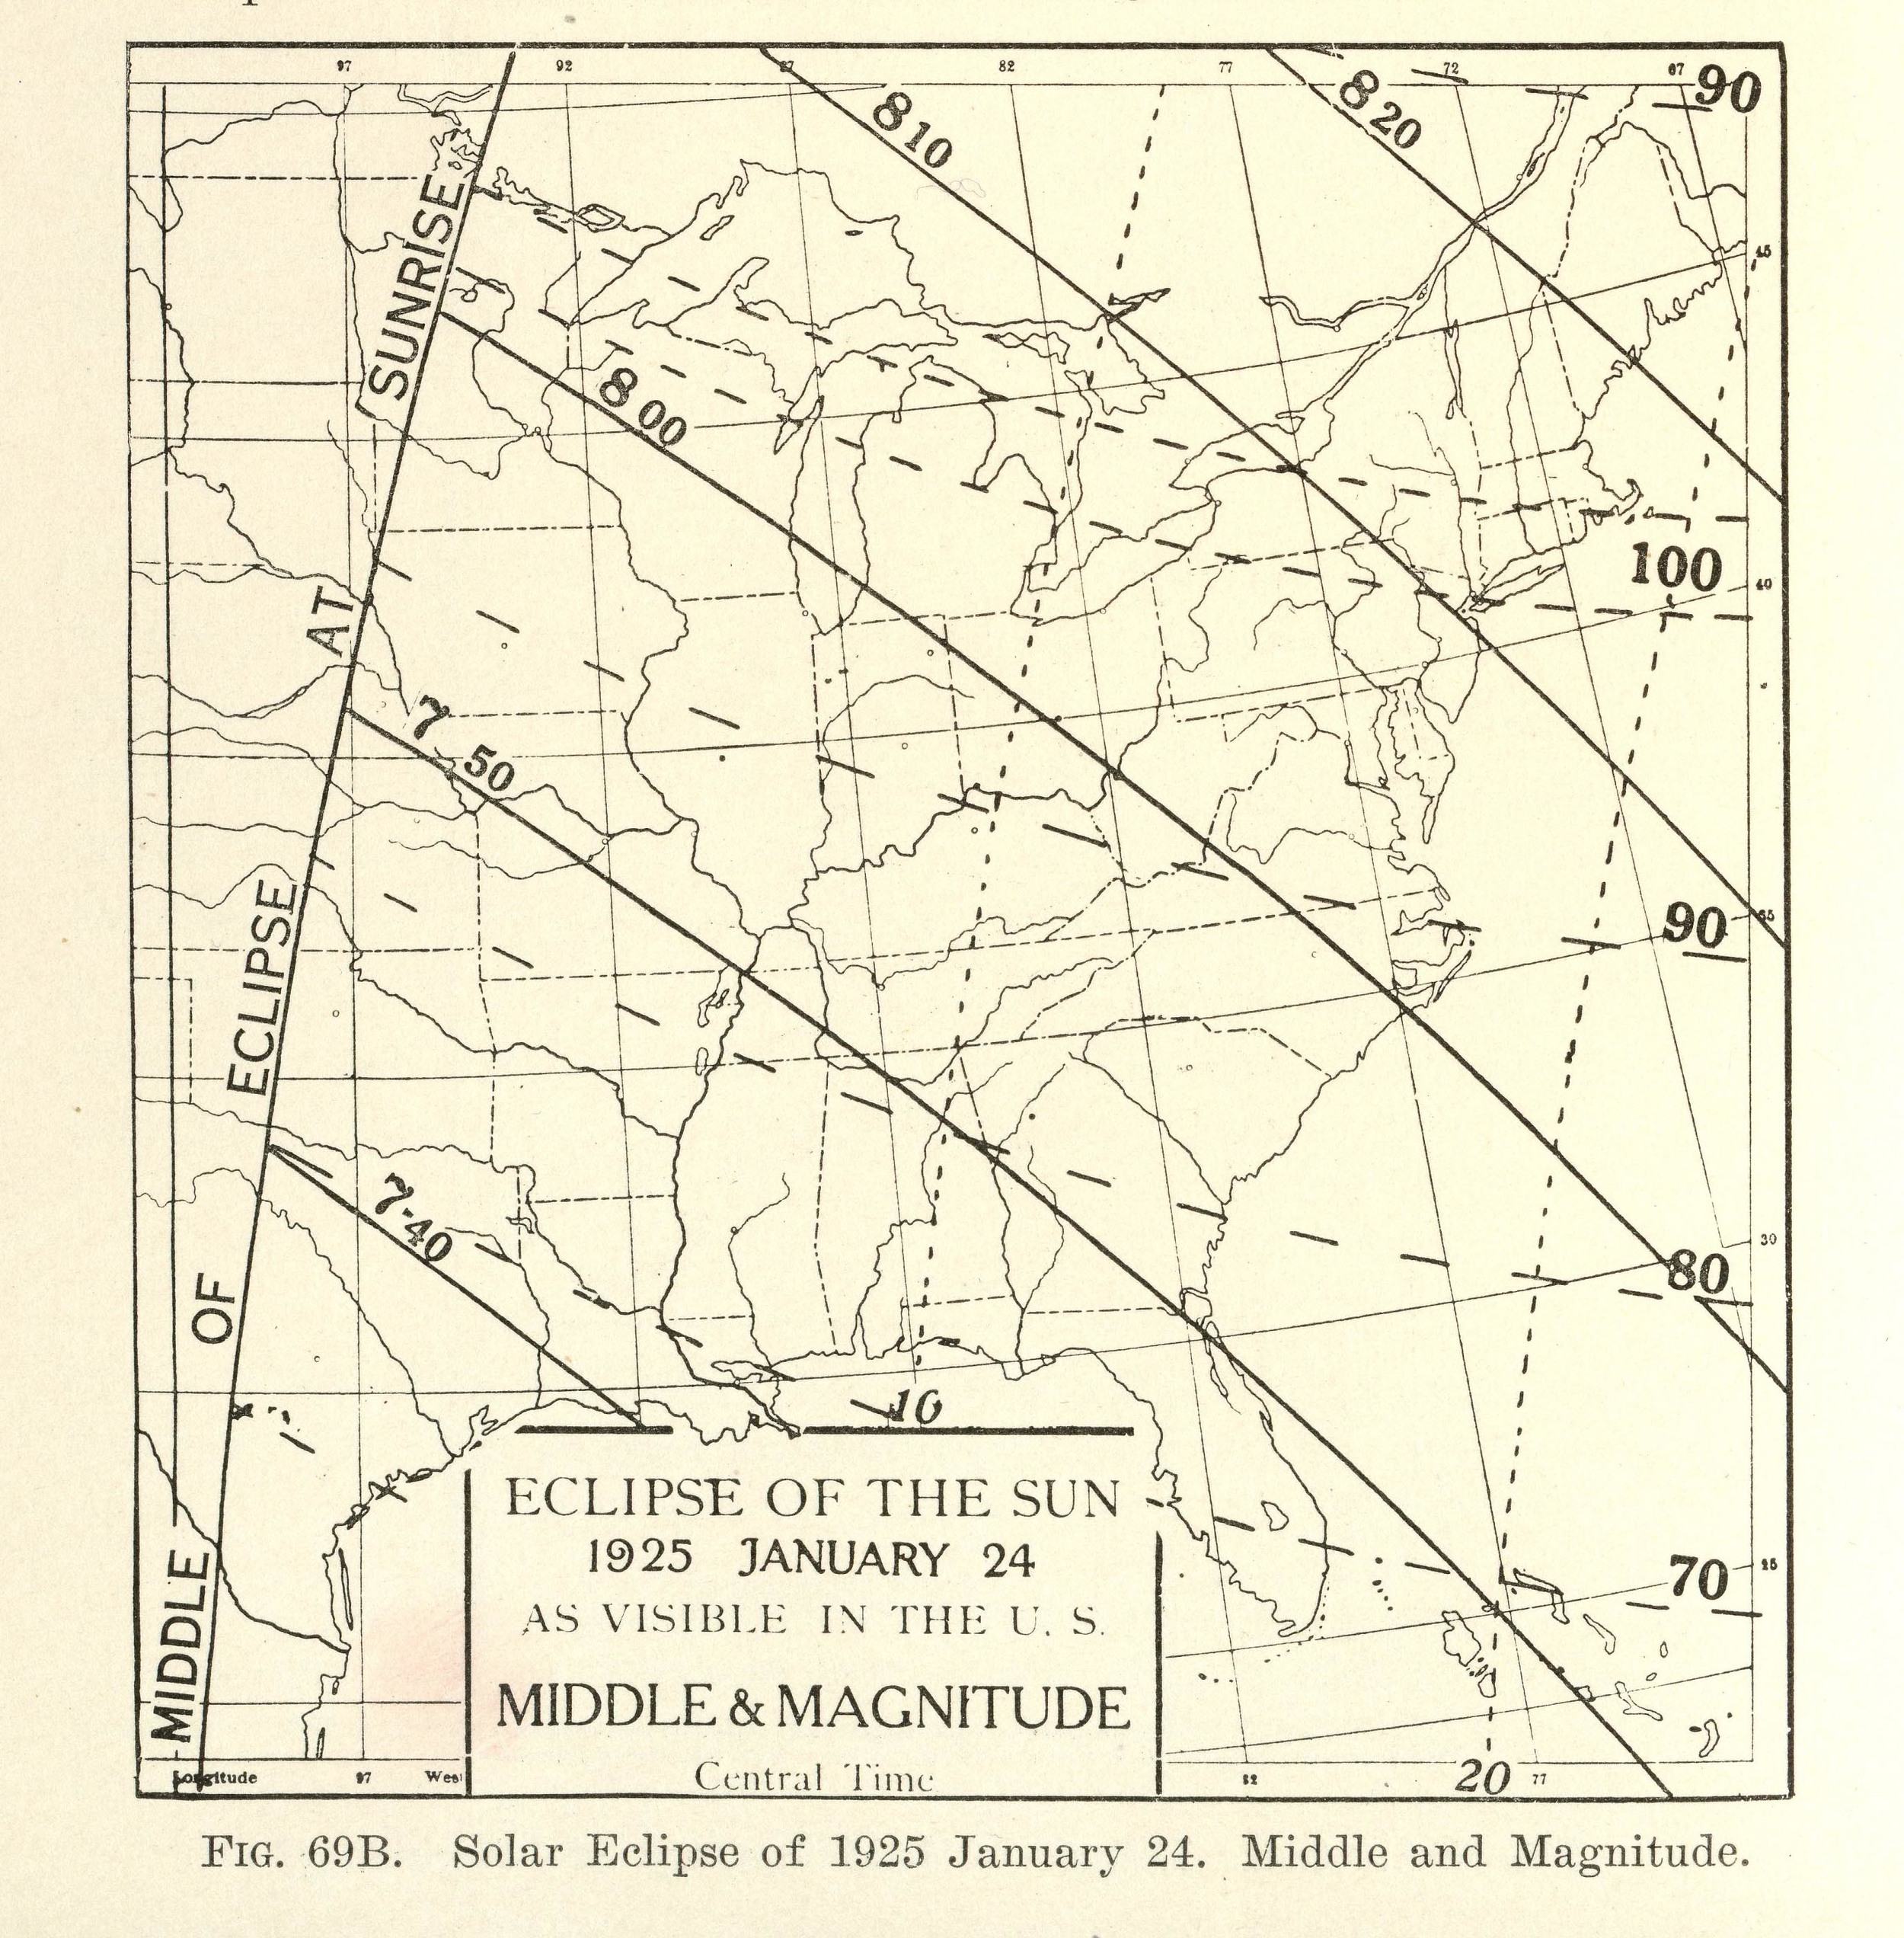 1925_January_24_TSE_Middle_and_Magnitude_Rigge_Graphic_Construction_of_Eclipses_and_Occulatations.jpg